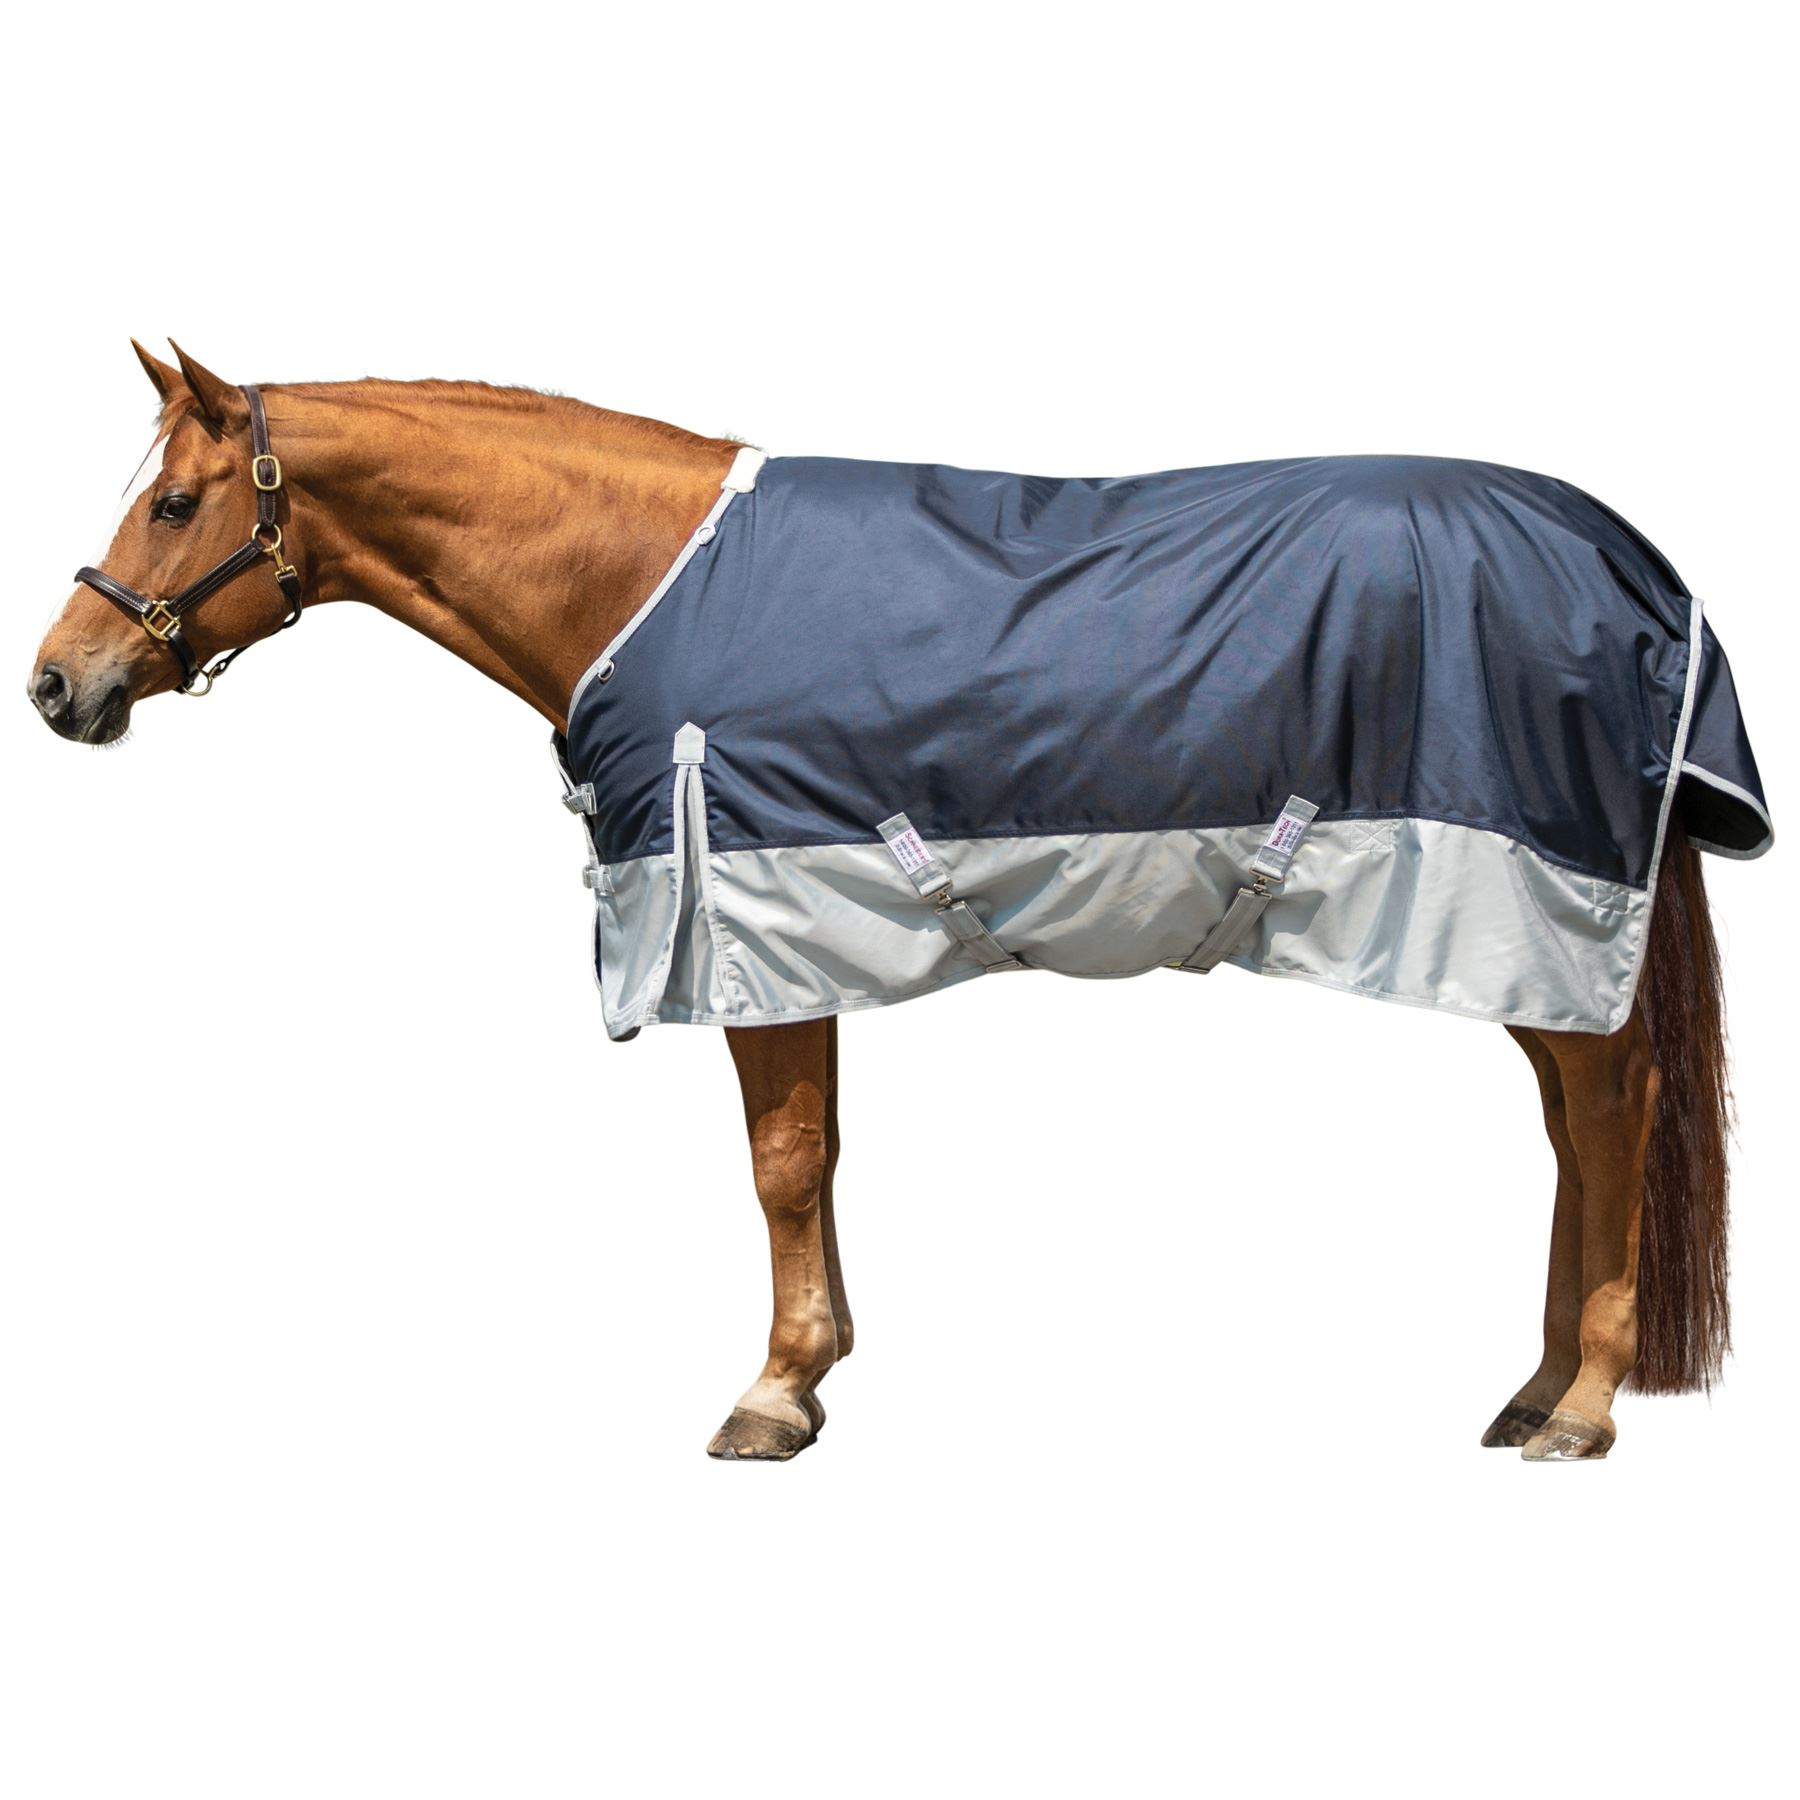 Dura-Tech® Viking Turnout Blanket - X-Midweight